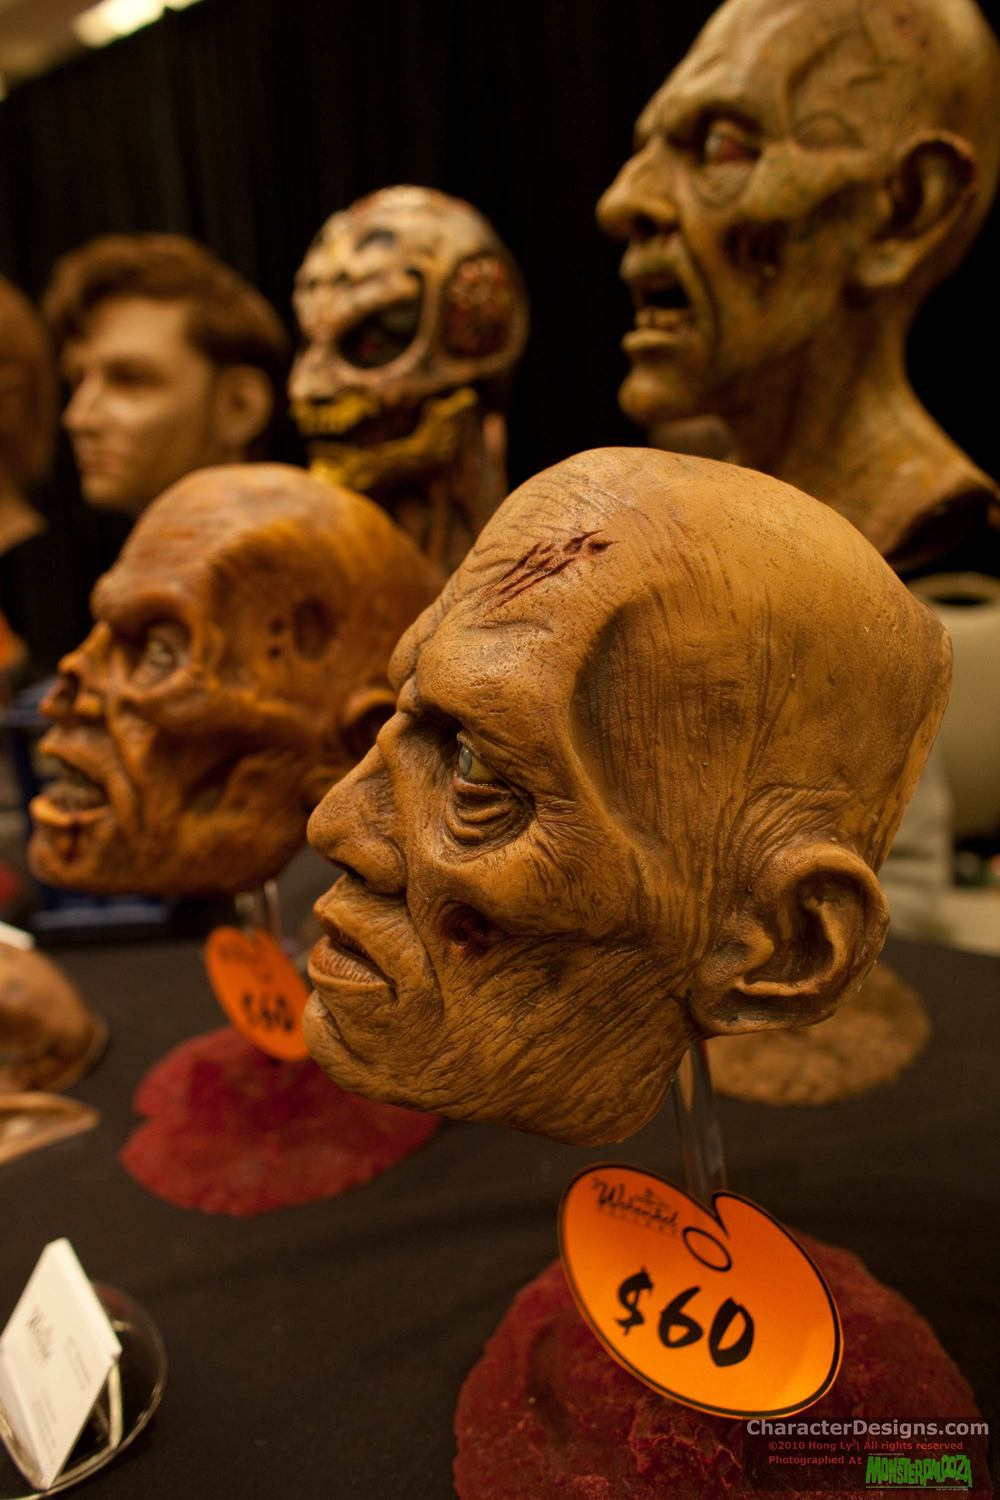 2010_Monsterpalooza_527.jpg